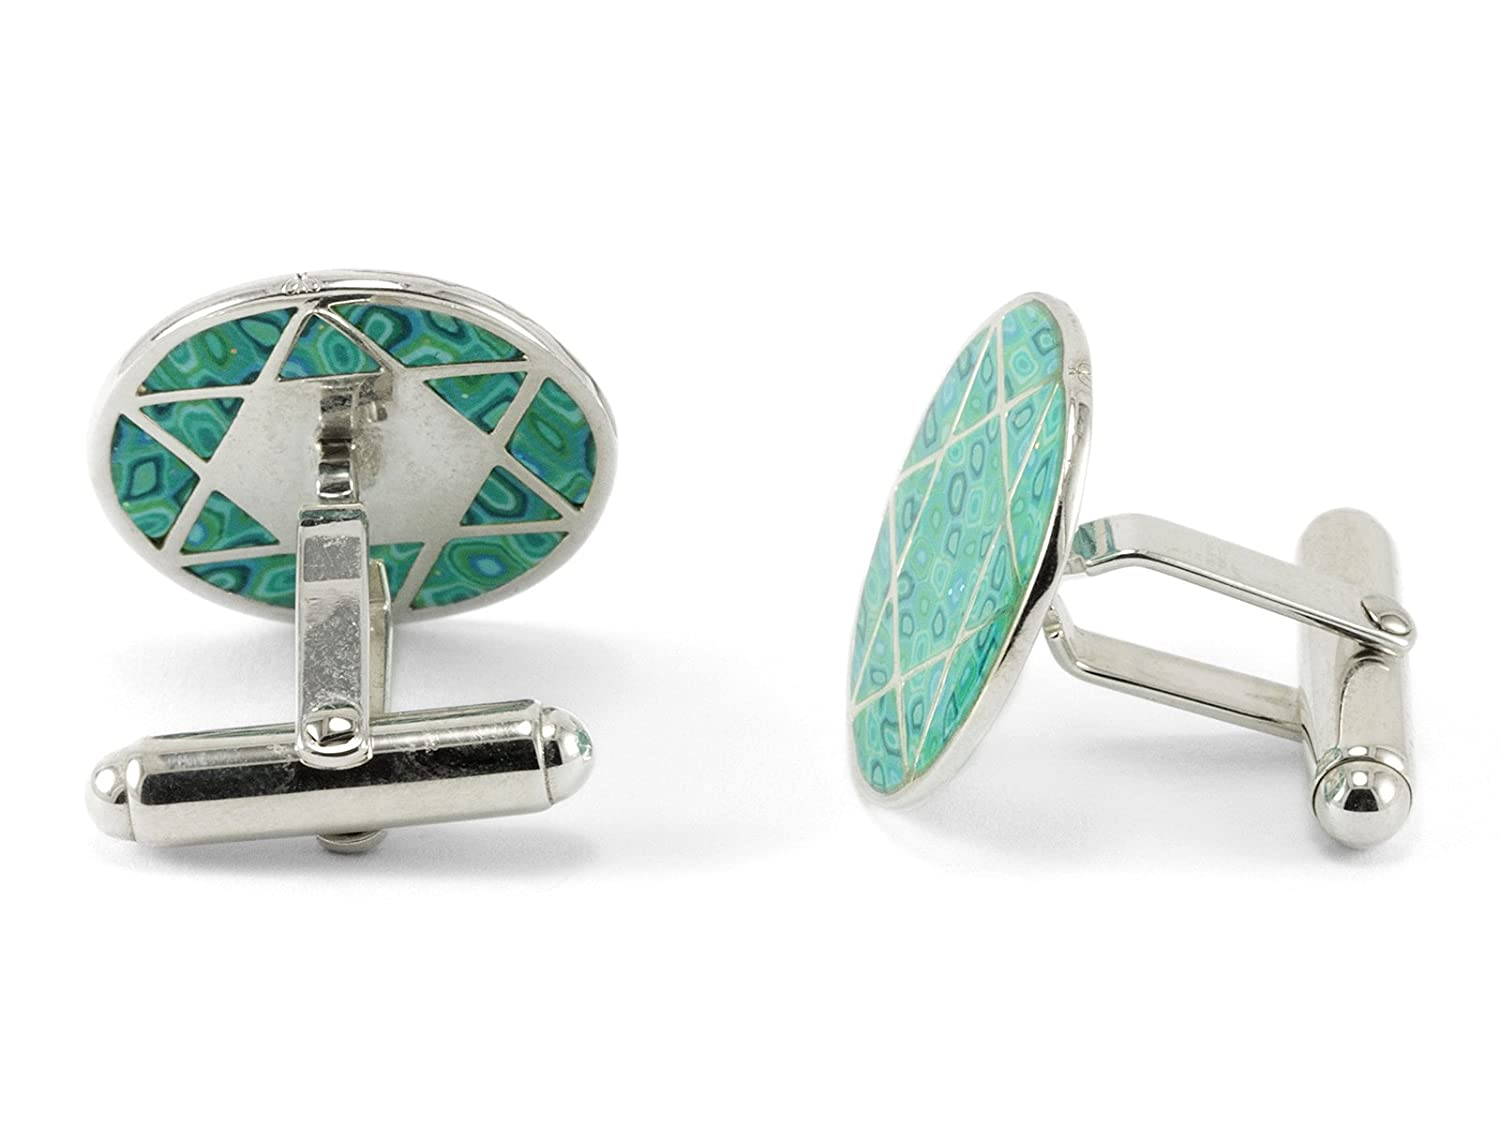 Image of 925 Sterling Silver Men's Star of David Cufflinks Handmade Jewelry with Polymer Clay Cuff Links